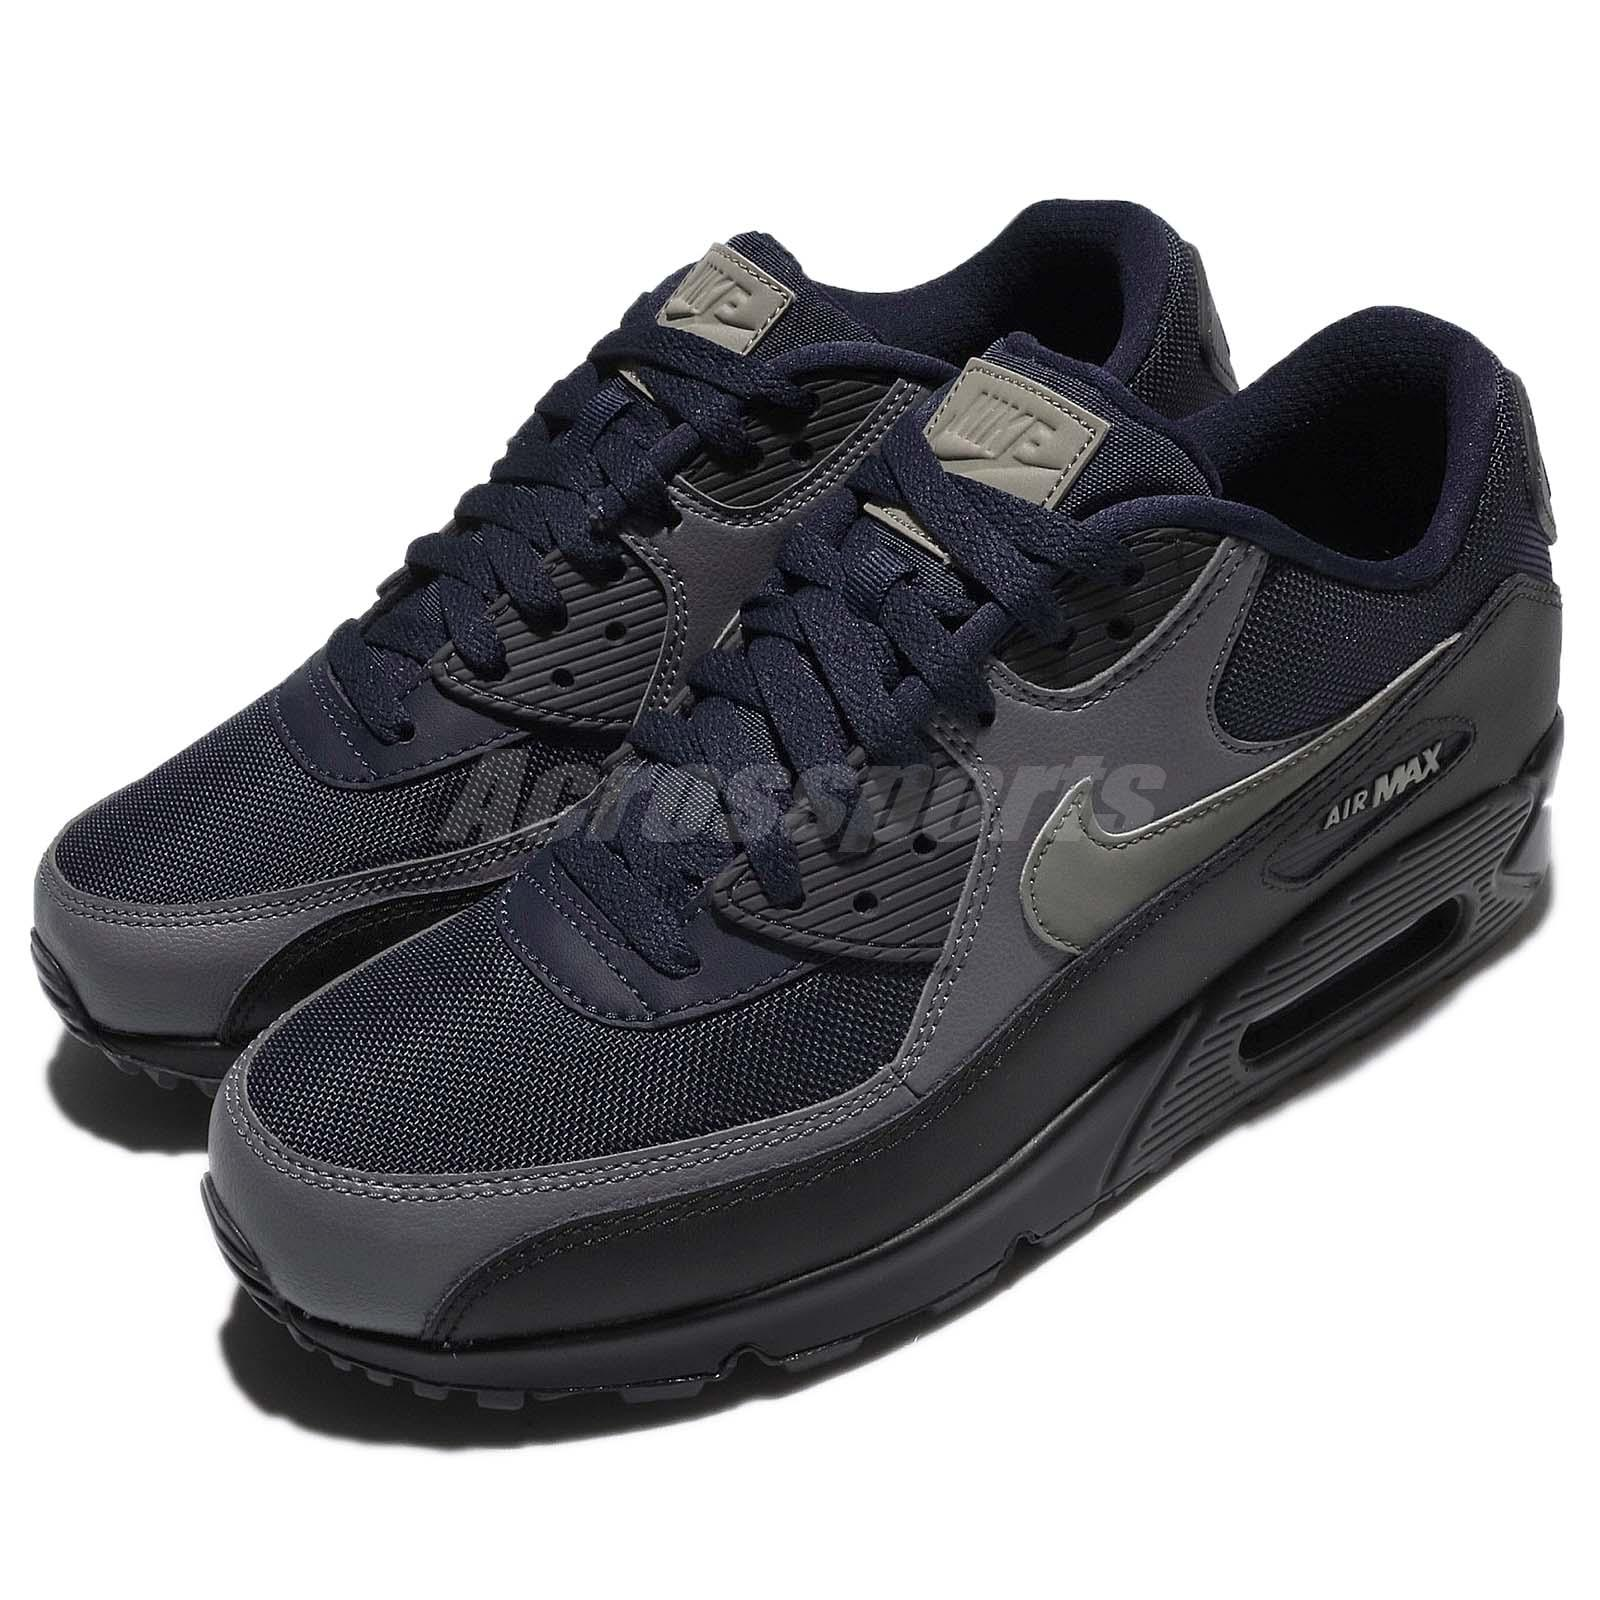 Nike Air Max 90 Essential Obsidian Dark Dark Dark Stucco Nero Uomo Running Shoe 537384426 6774f5